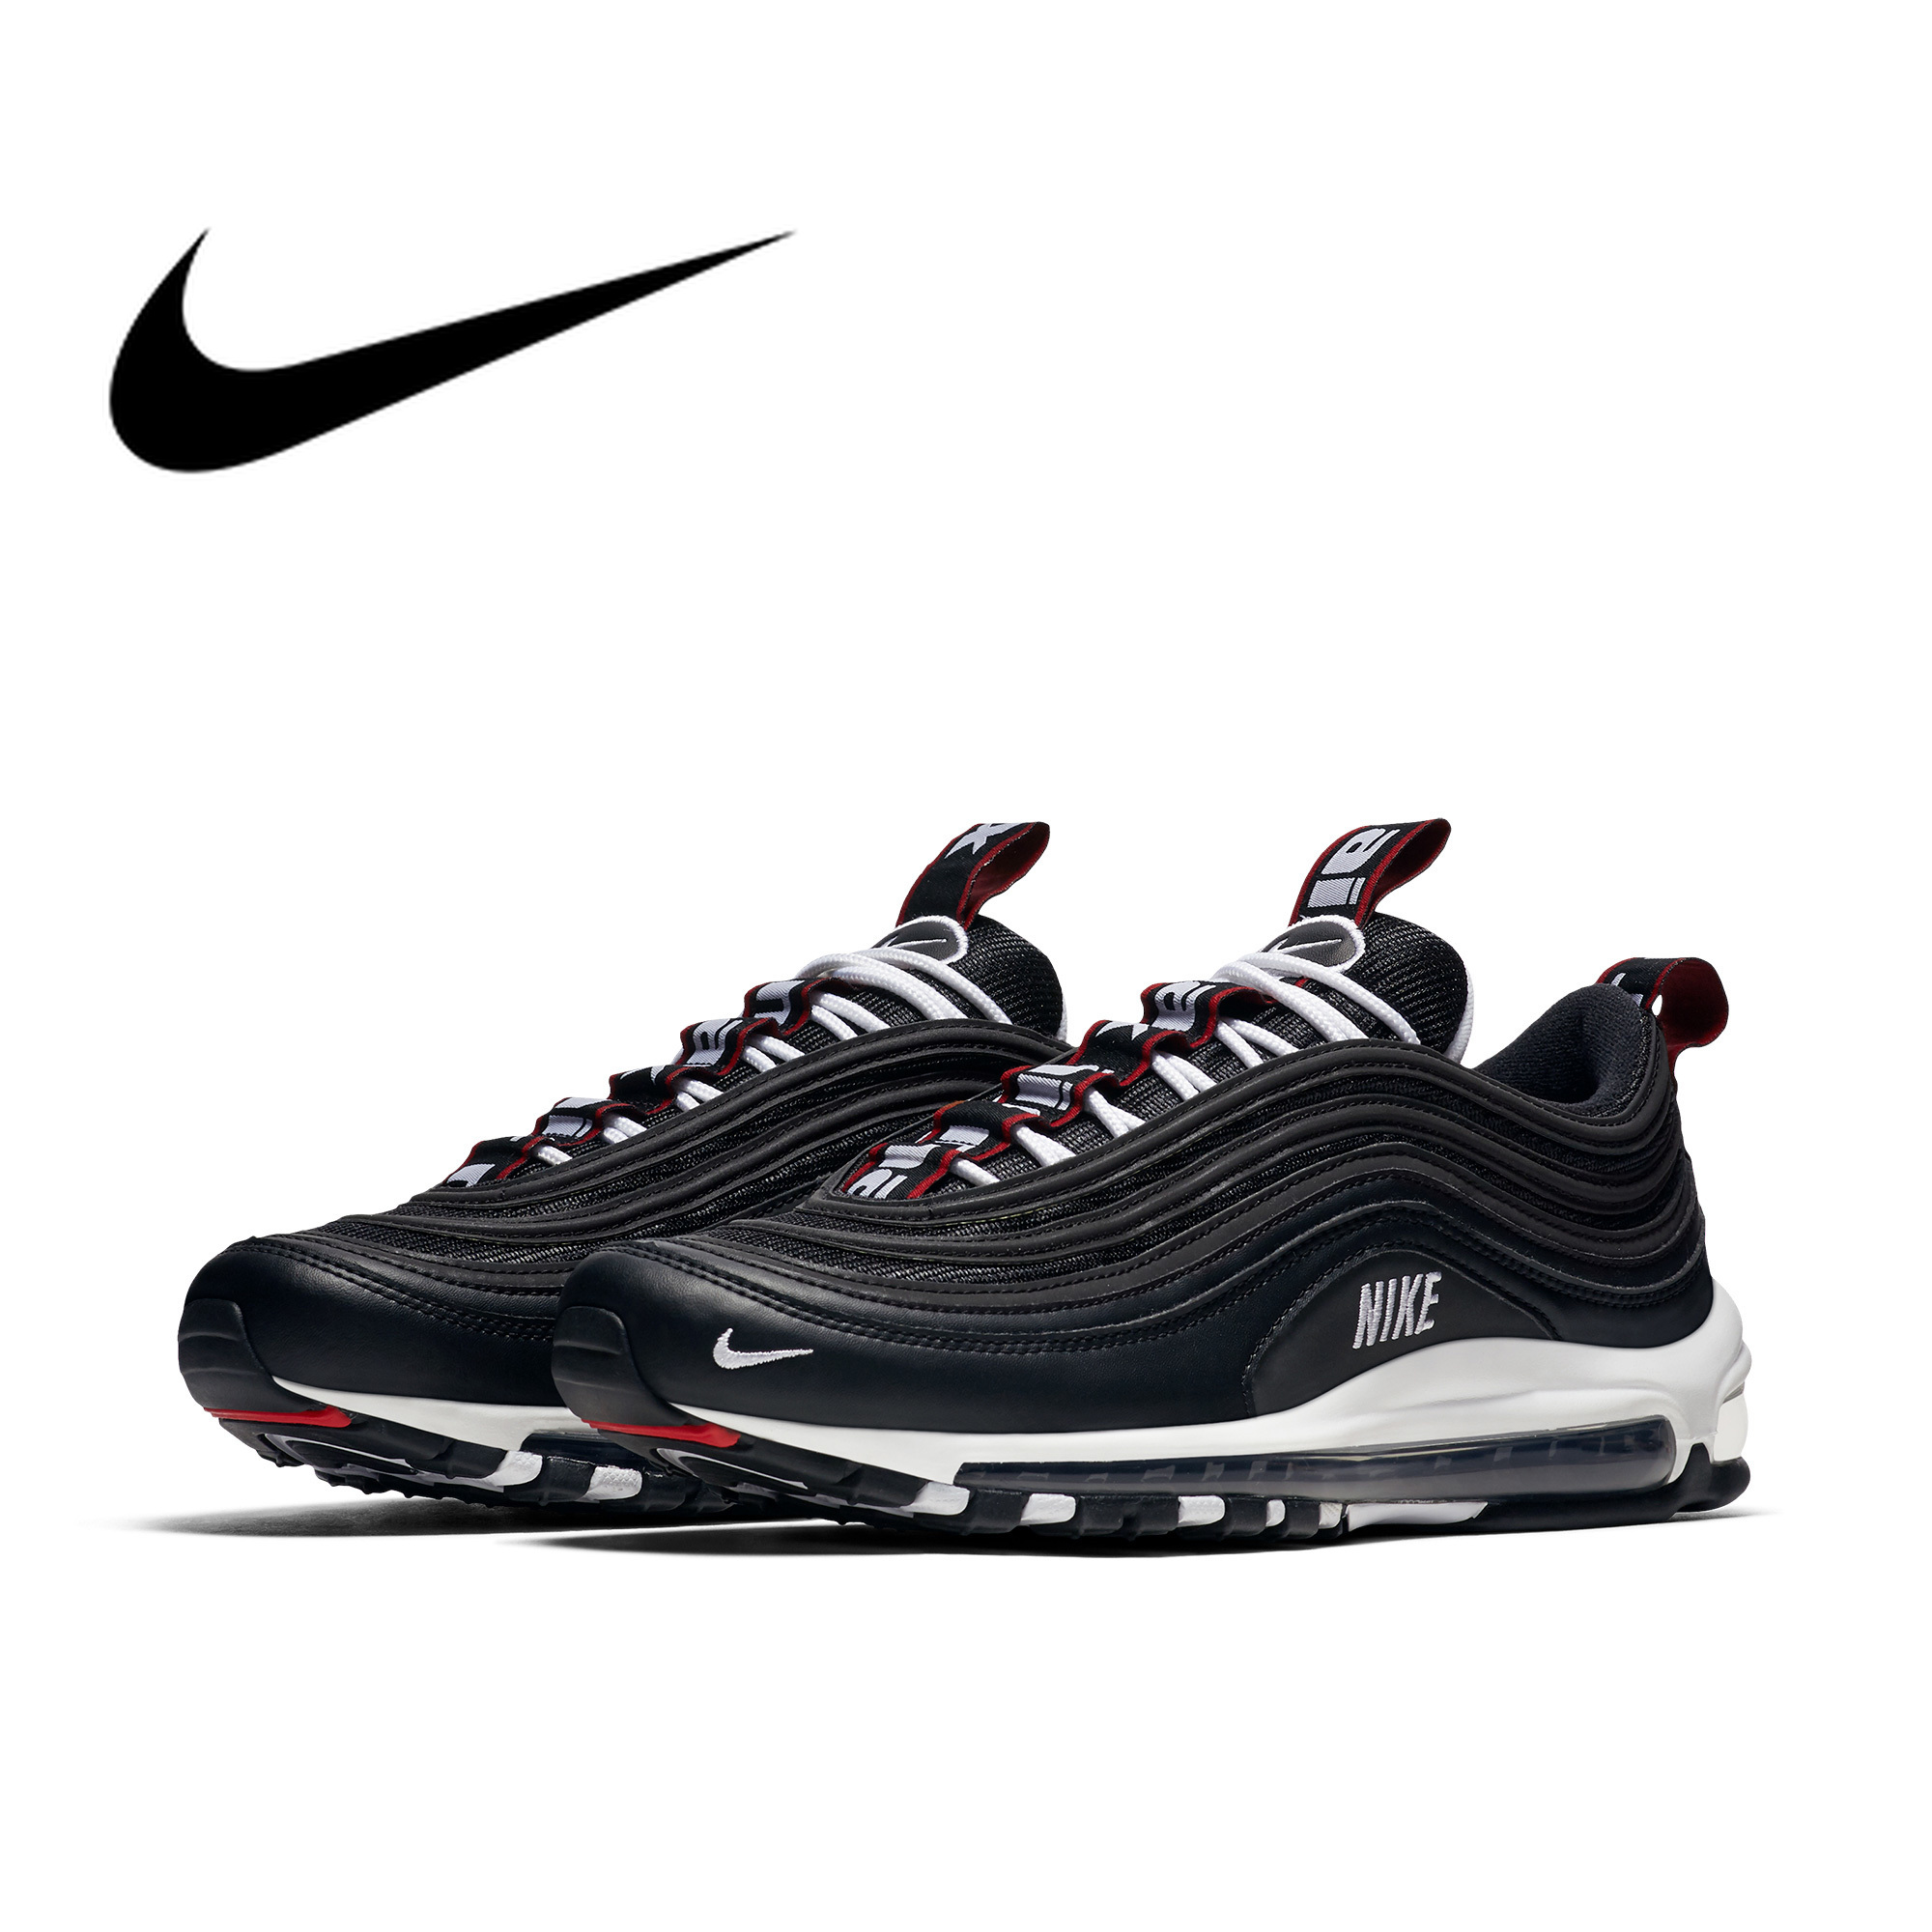 Original authentic NIKE AIR MAX 97 PREMIUM mens running shoes trend breathable outdoor sports shoes footwear designer 312834Original authentic NIKE AIR MAX 97 PREMIUM mens running shoes trend breathable outdoor sports shoes footwear designer 312834